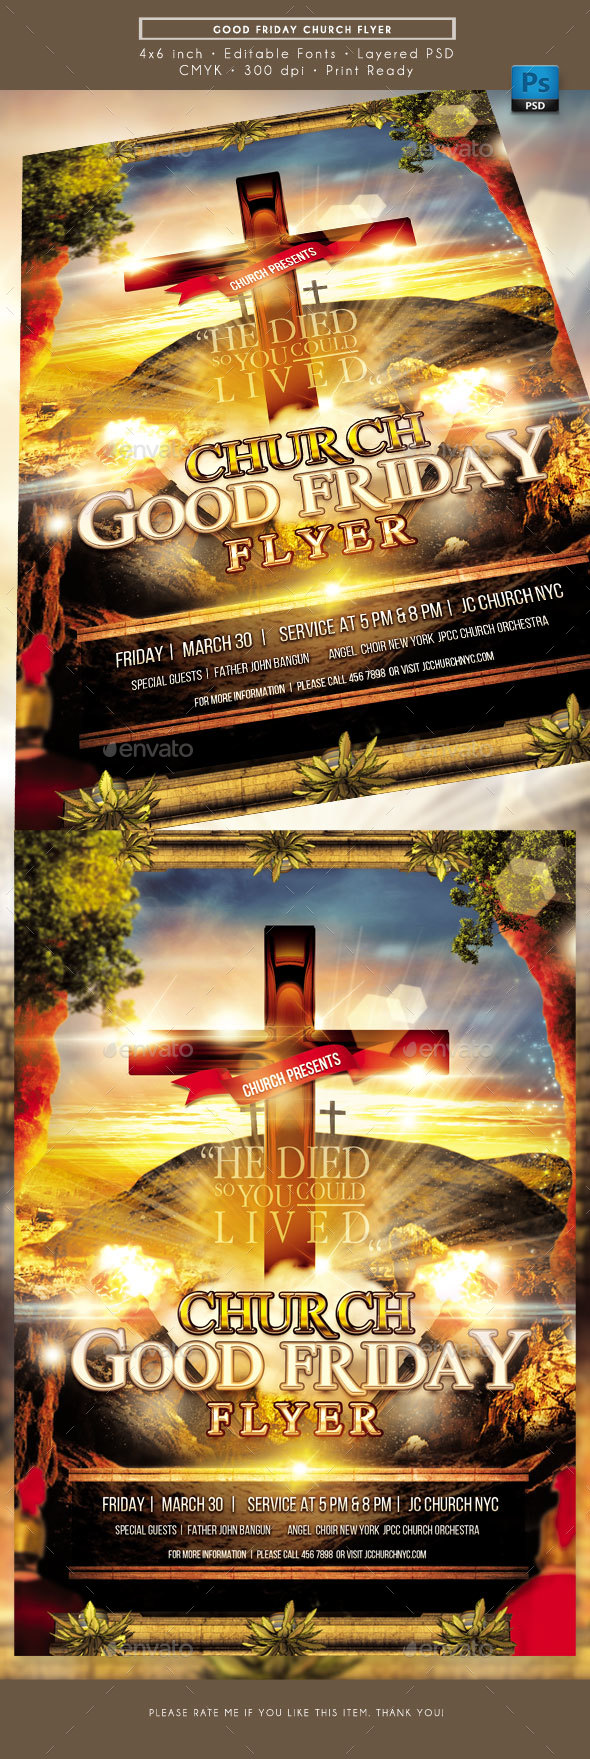 Good Friday Church Service Flyer - Church Flyers